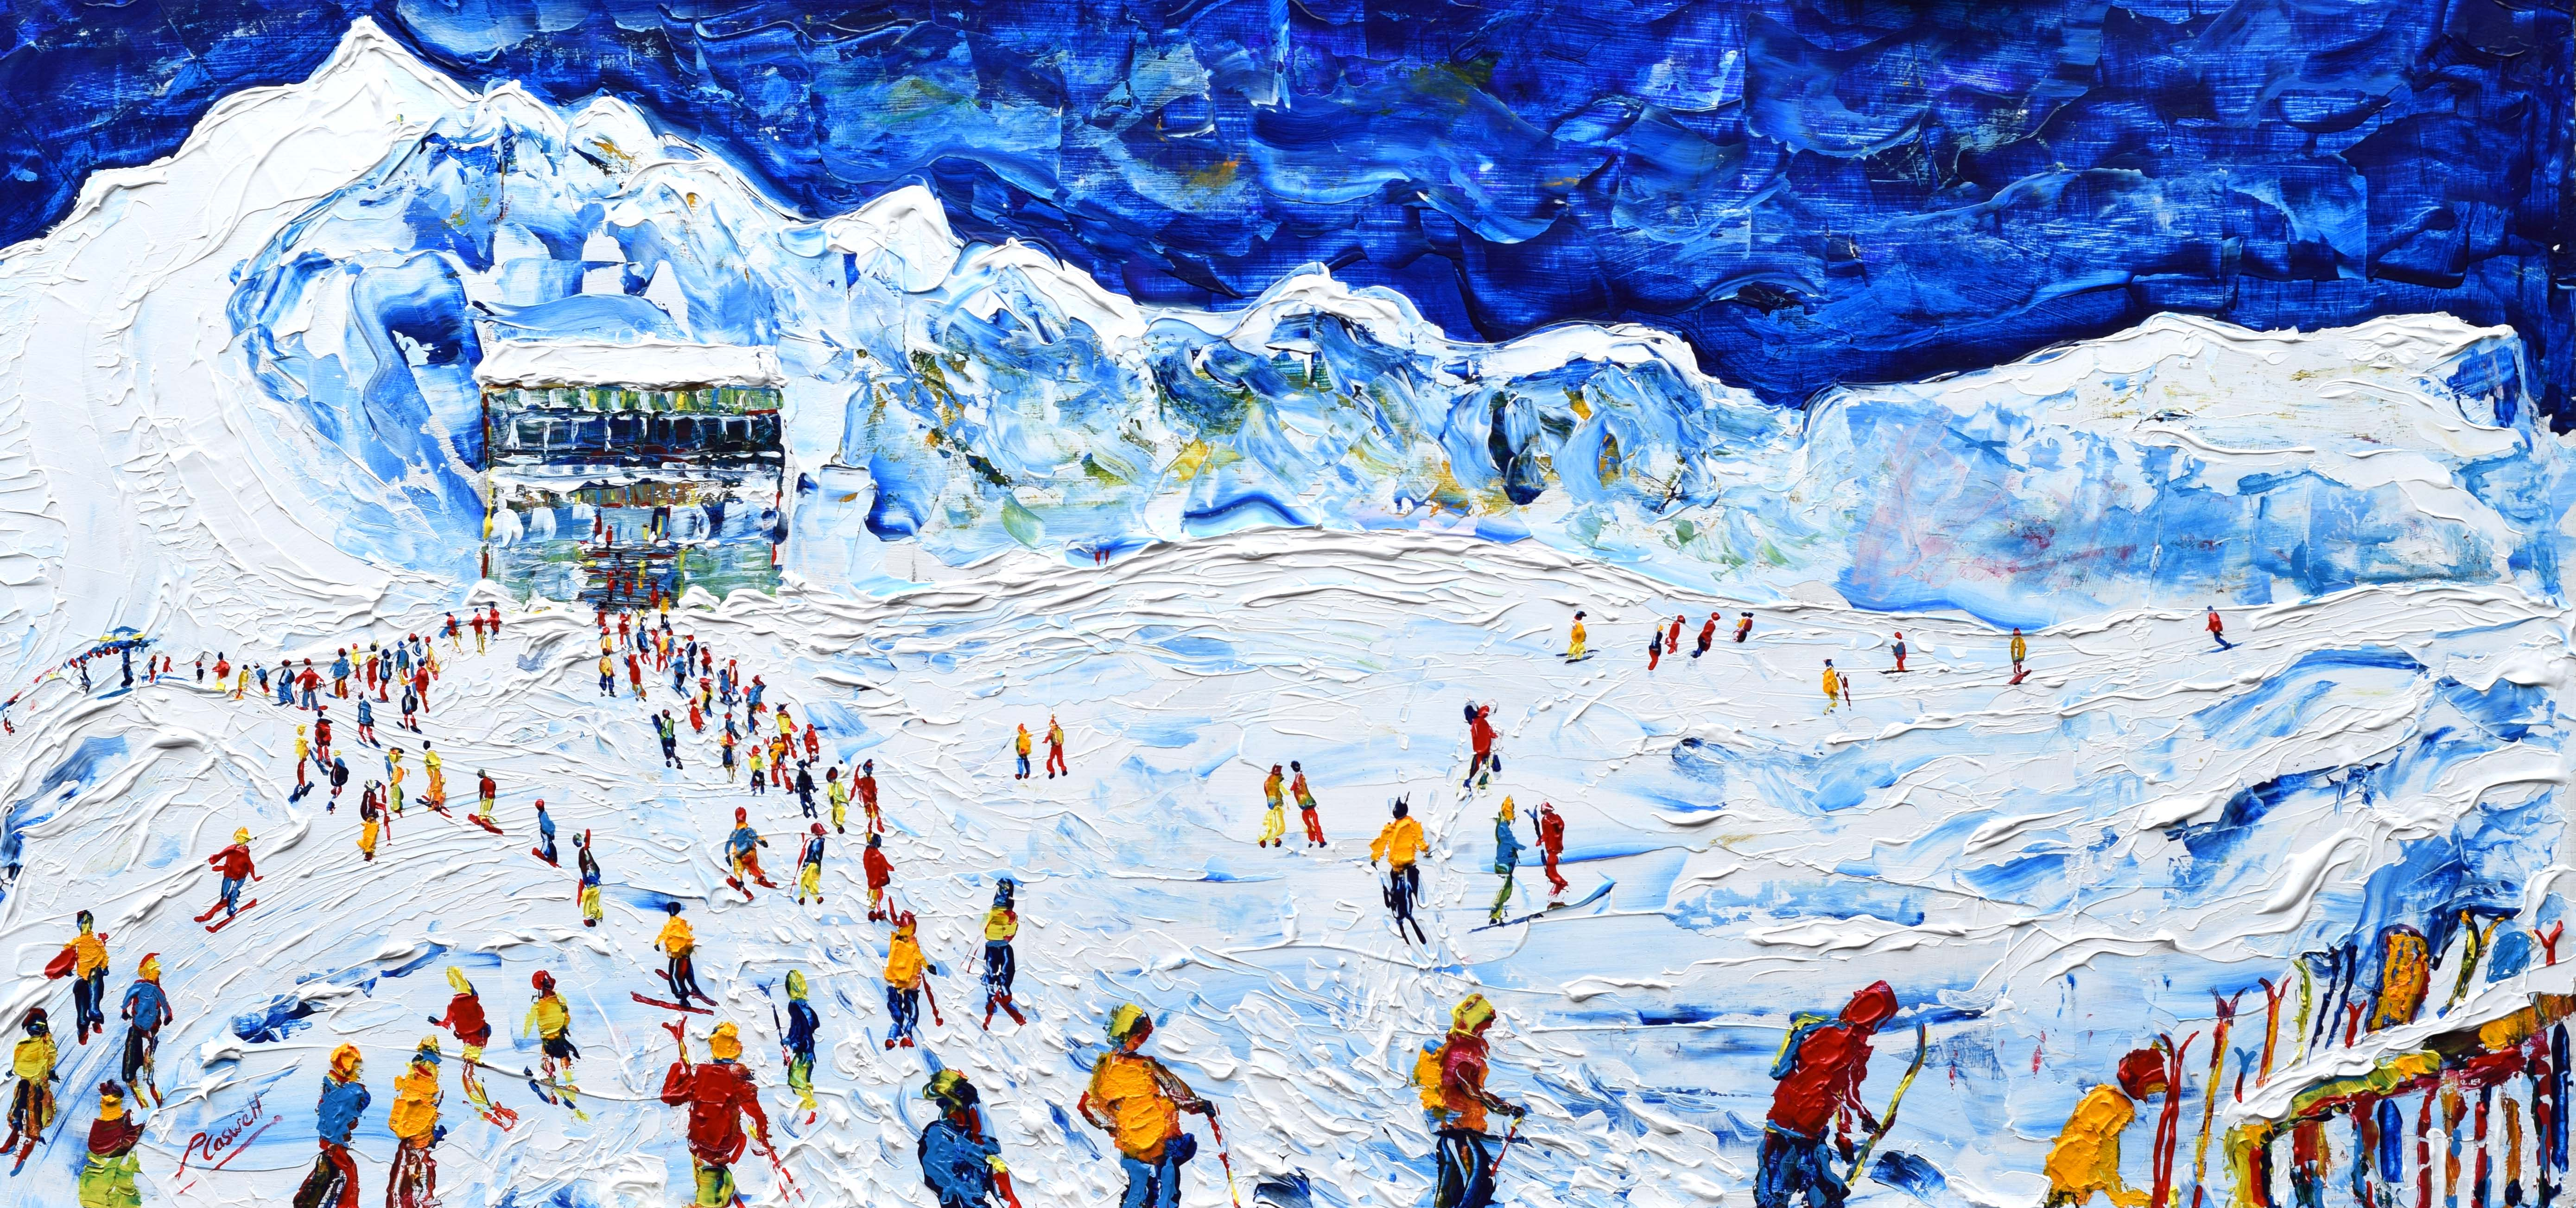 Tignes Val D'Isere Skiing Snowboarding Paintings For Sale